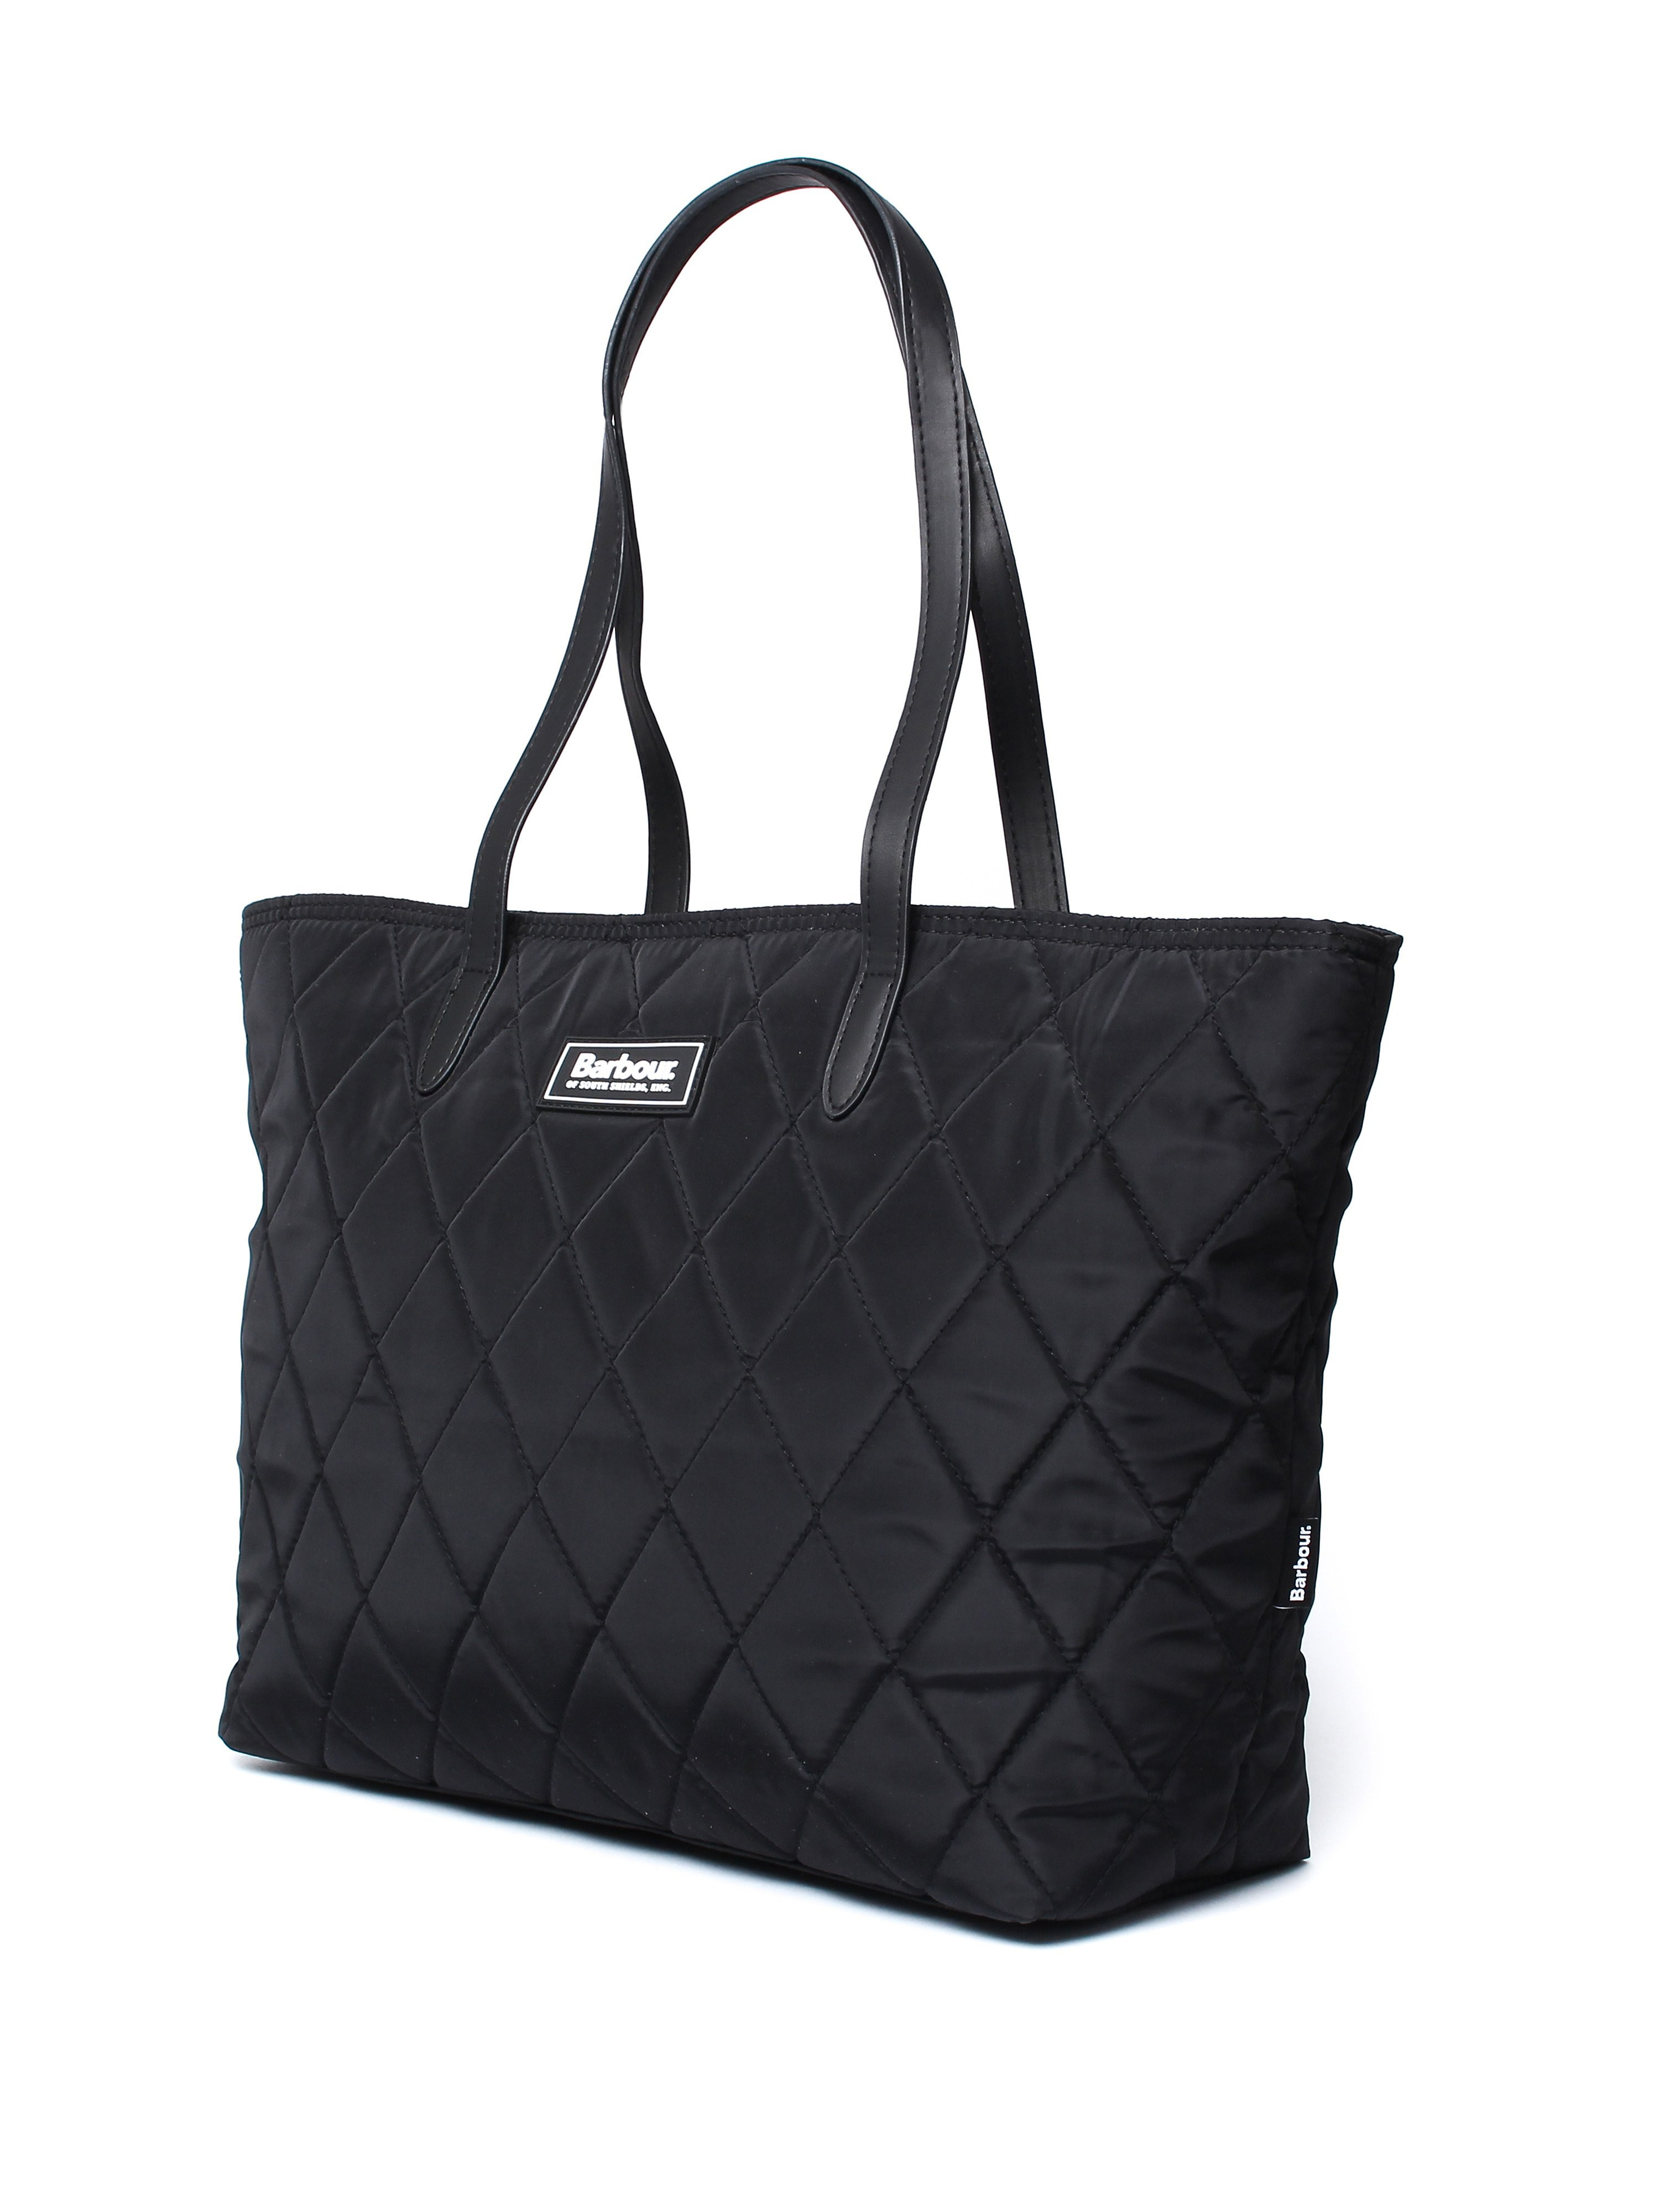 Barbour Women's Witford Quilted Tote Bag - Black